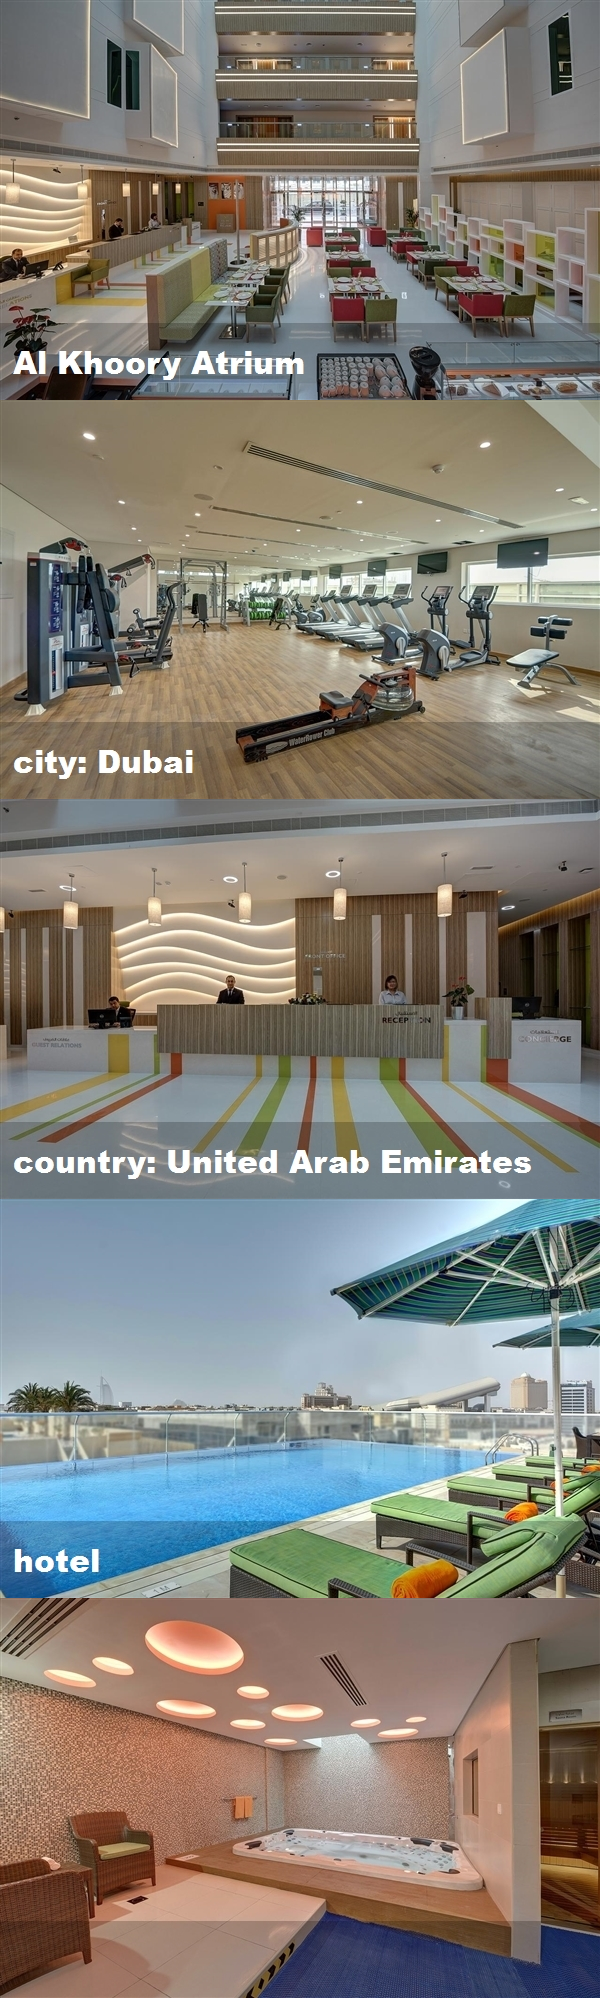 Al Khoory Atrium City Dubai Country United Arab Emirates